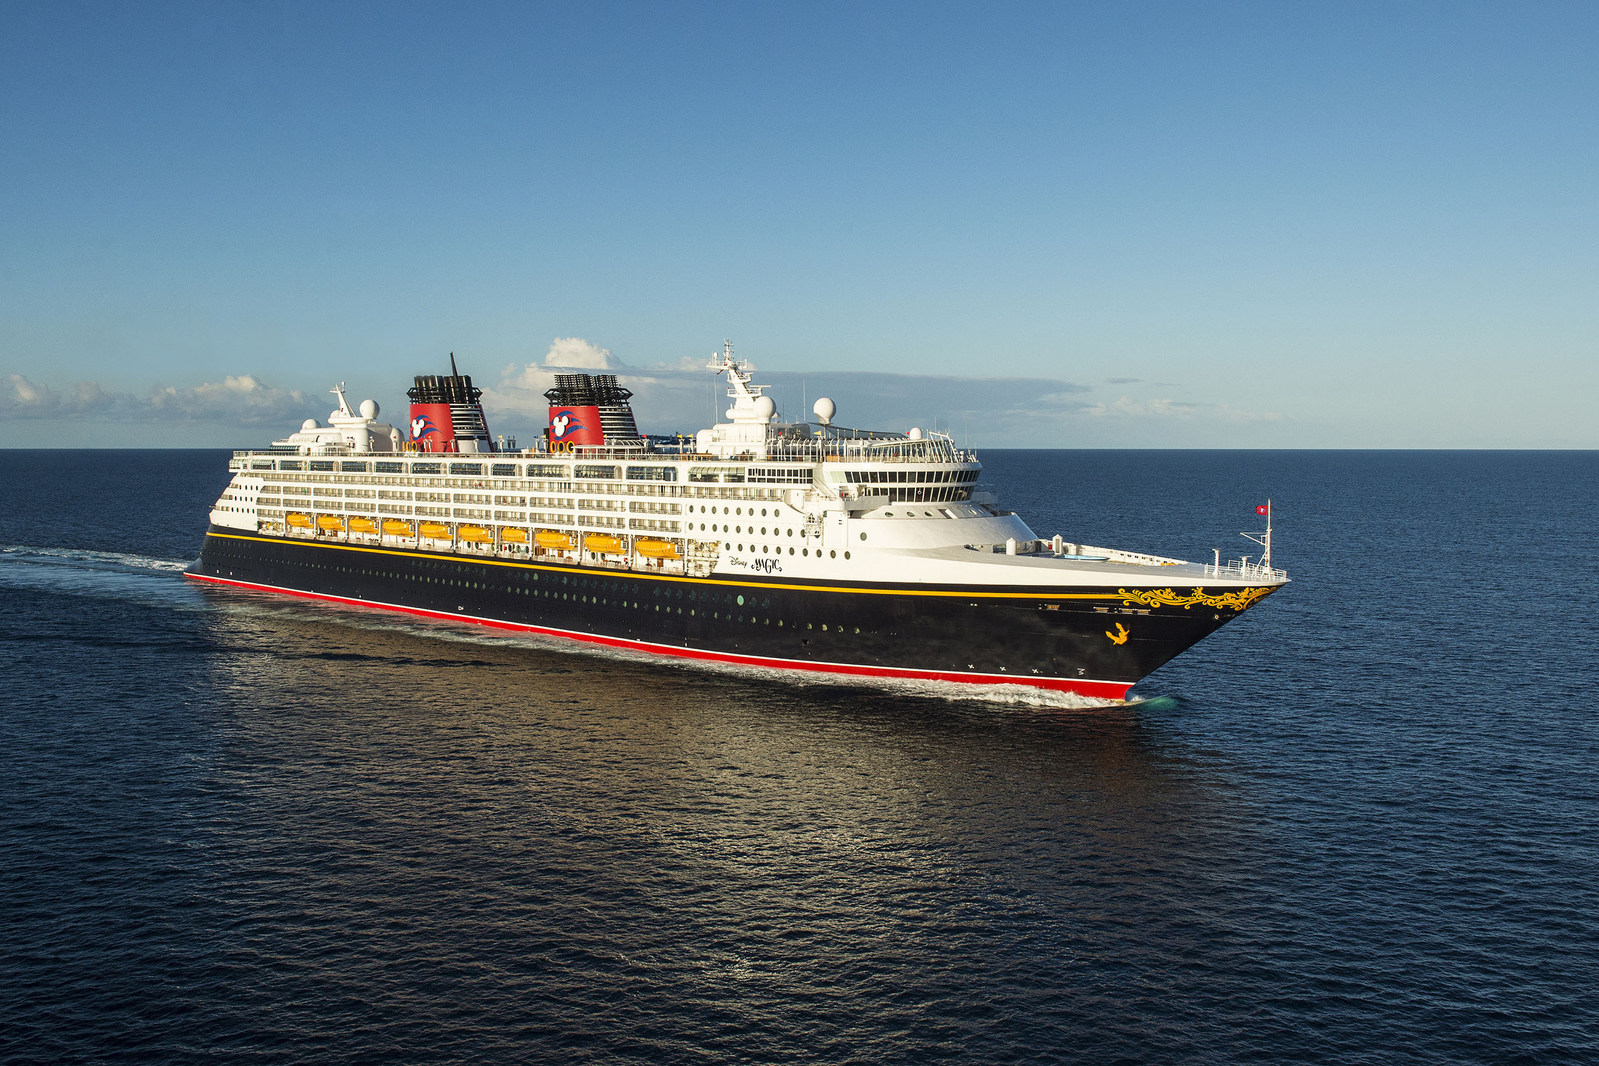 Disney Cruise Line Expands San Diego Season and Returns to Popular Tropical Ports from Both Coasts in Early 2019